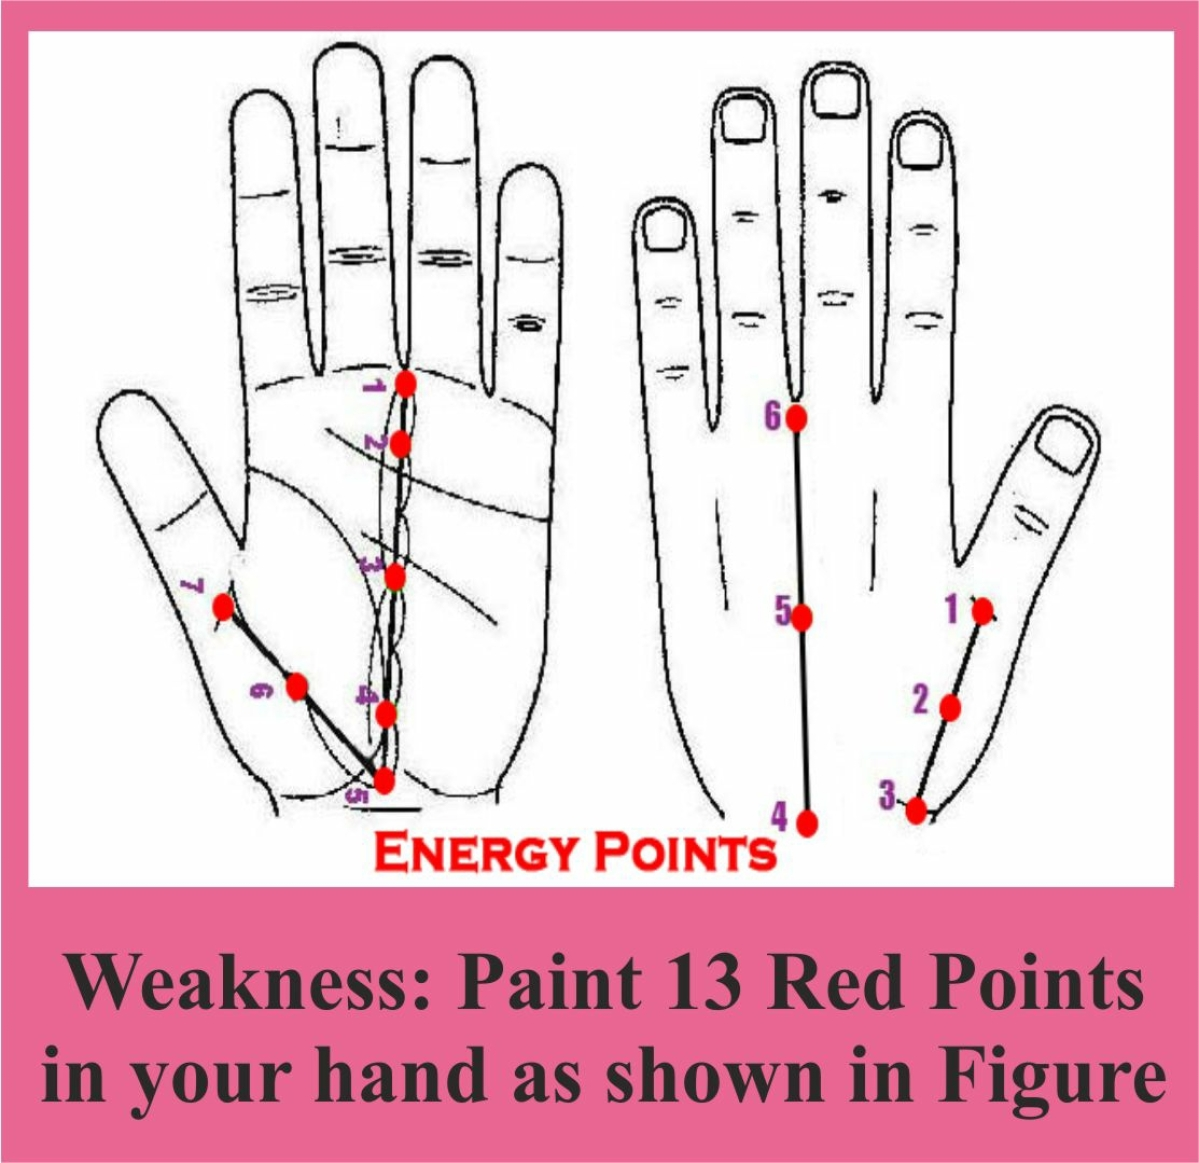 The 13 energy points in our hand